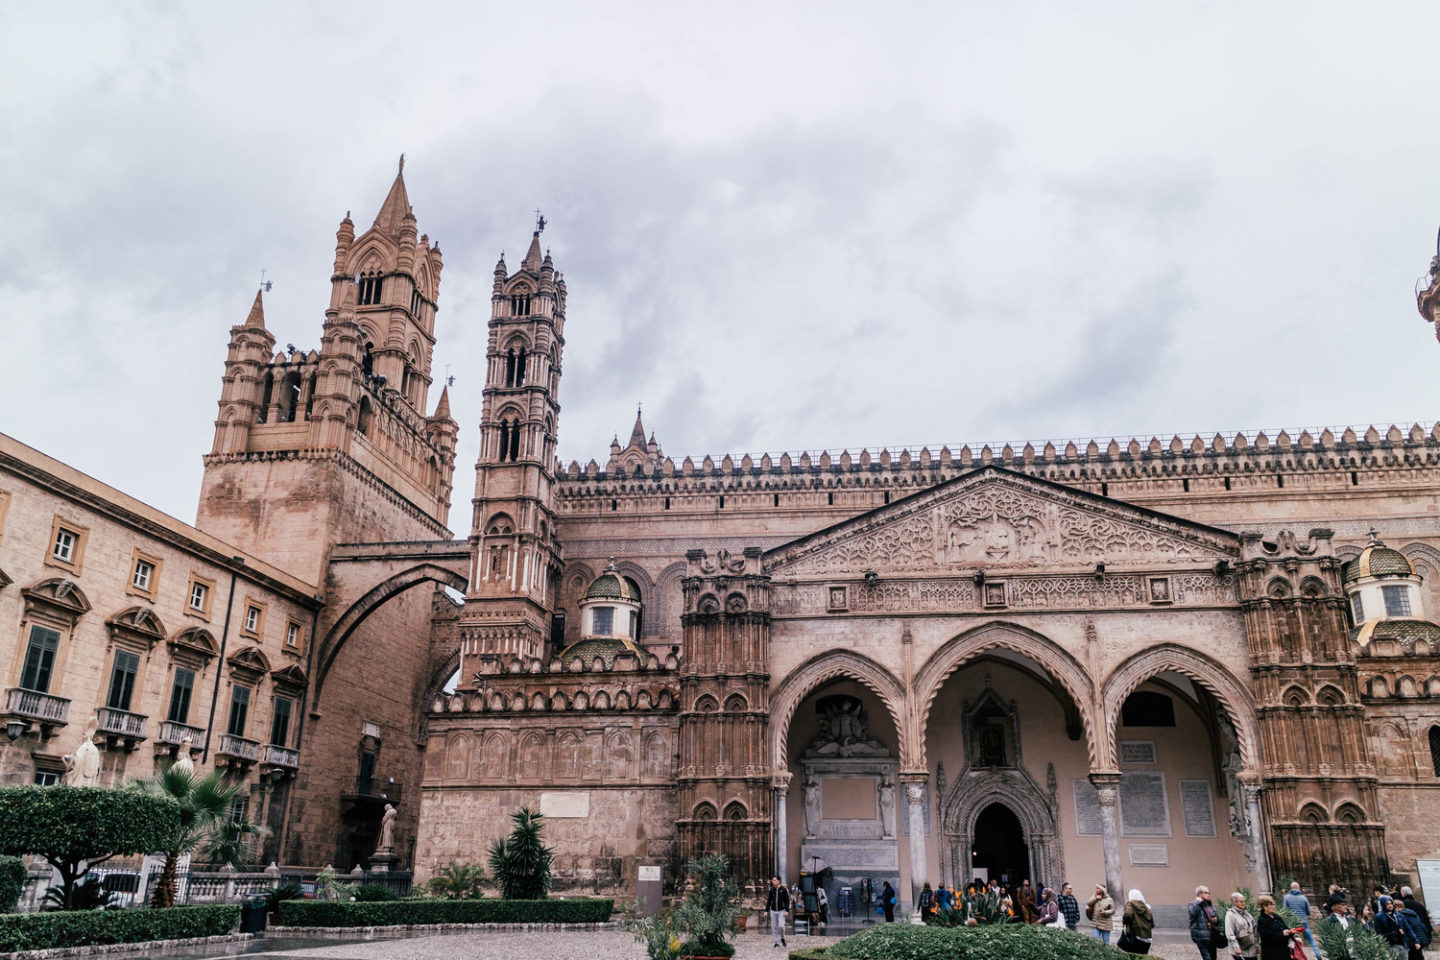 the cathedral of palermo, italy